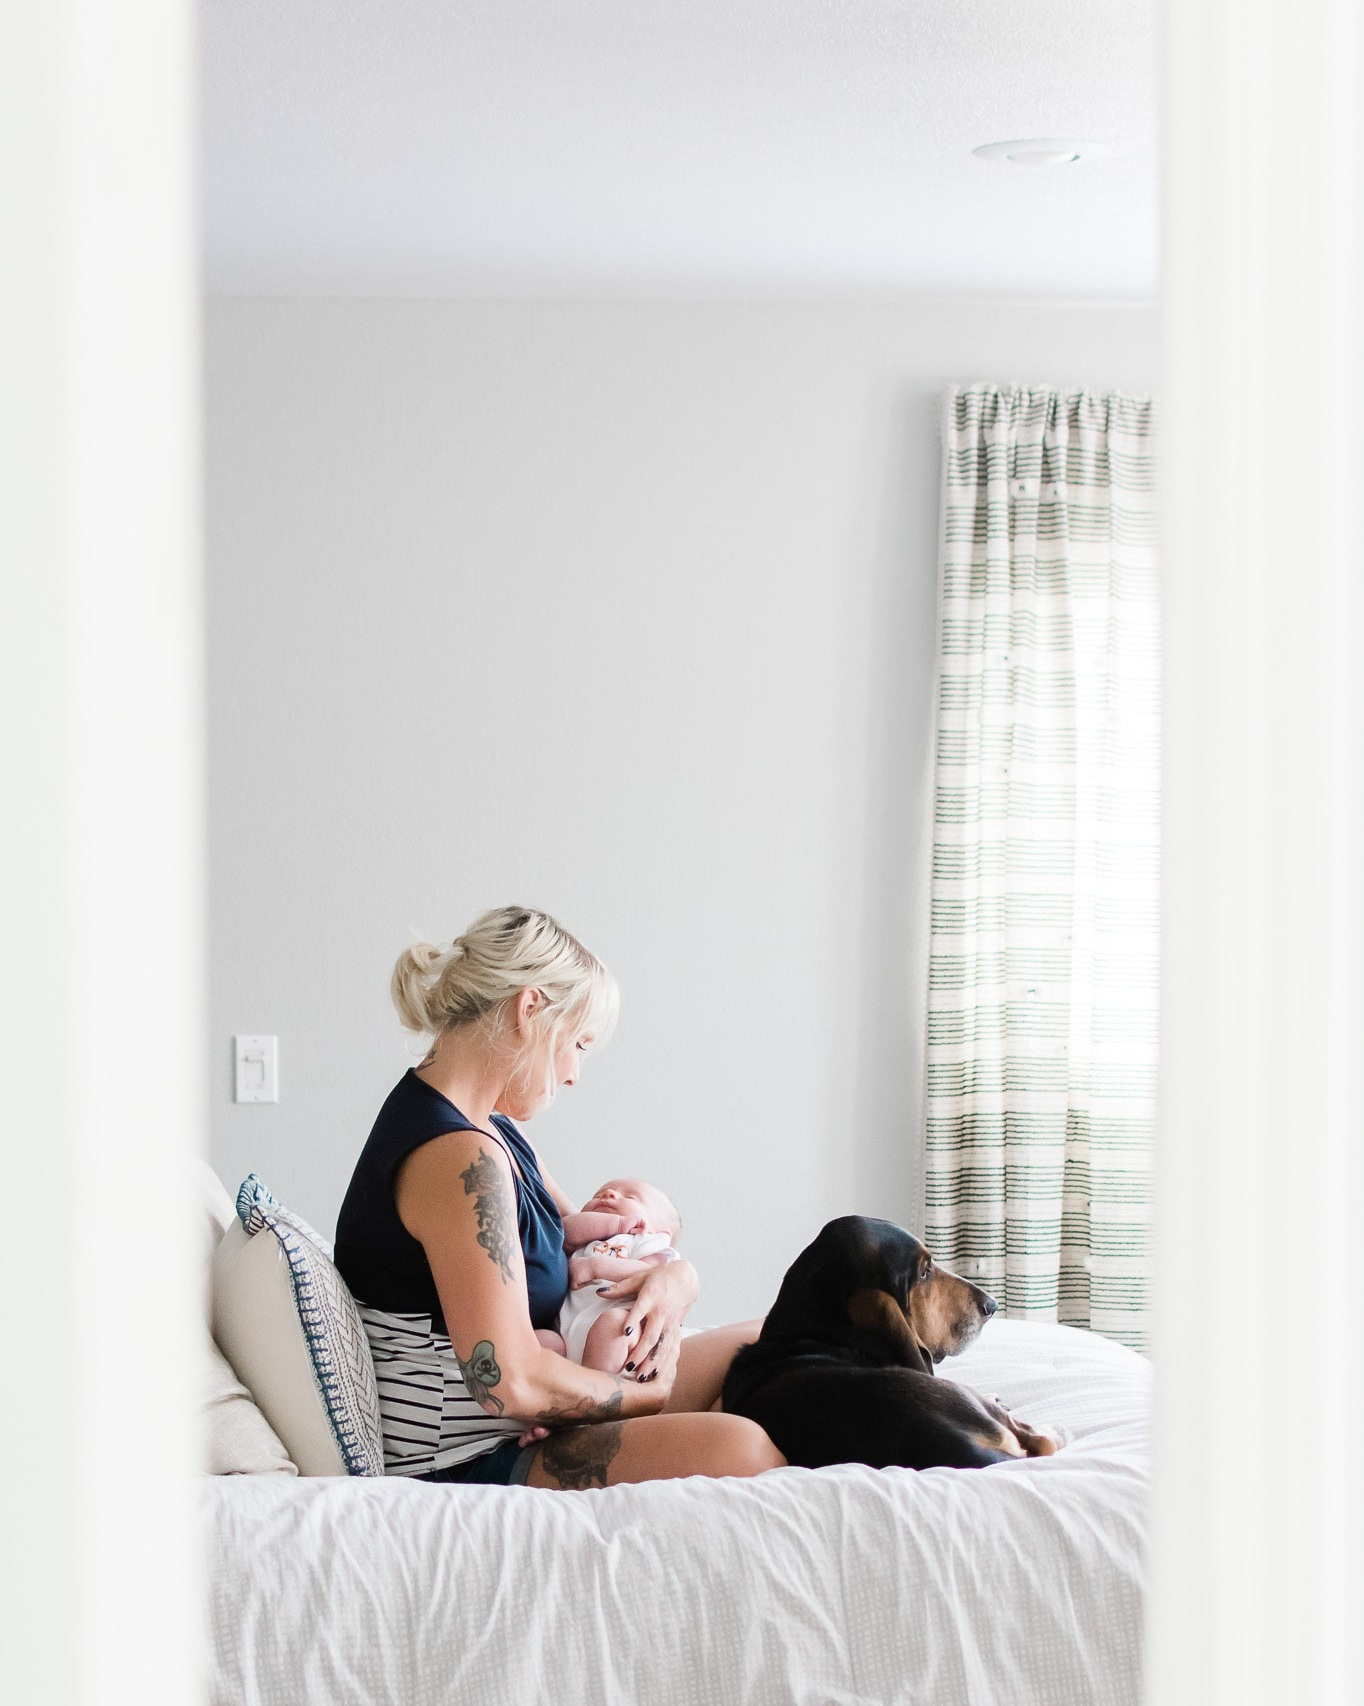 A natural light portrait of a mother with her dog and baby boy.